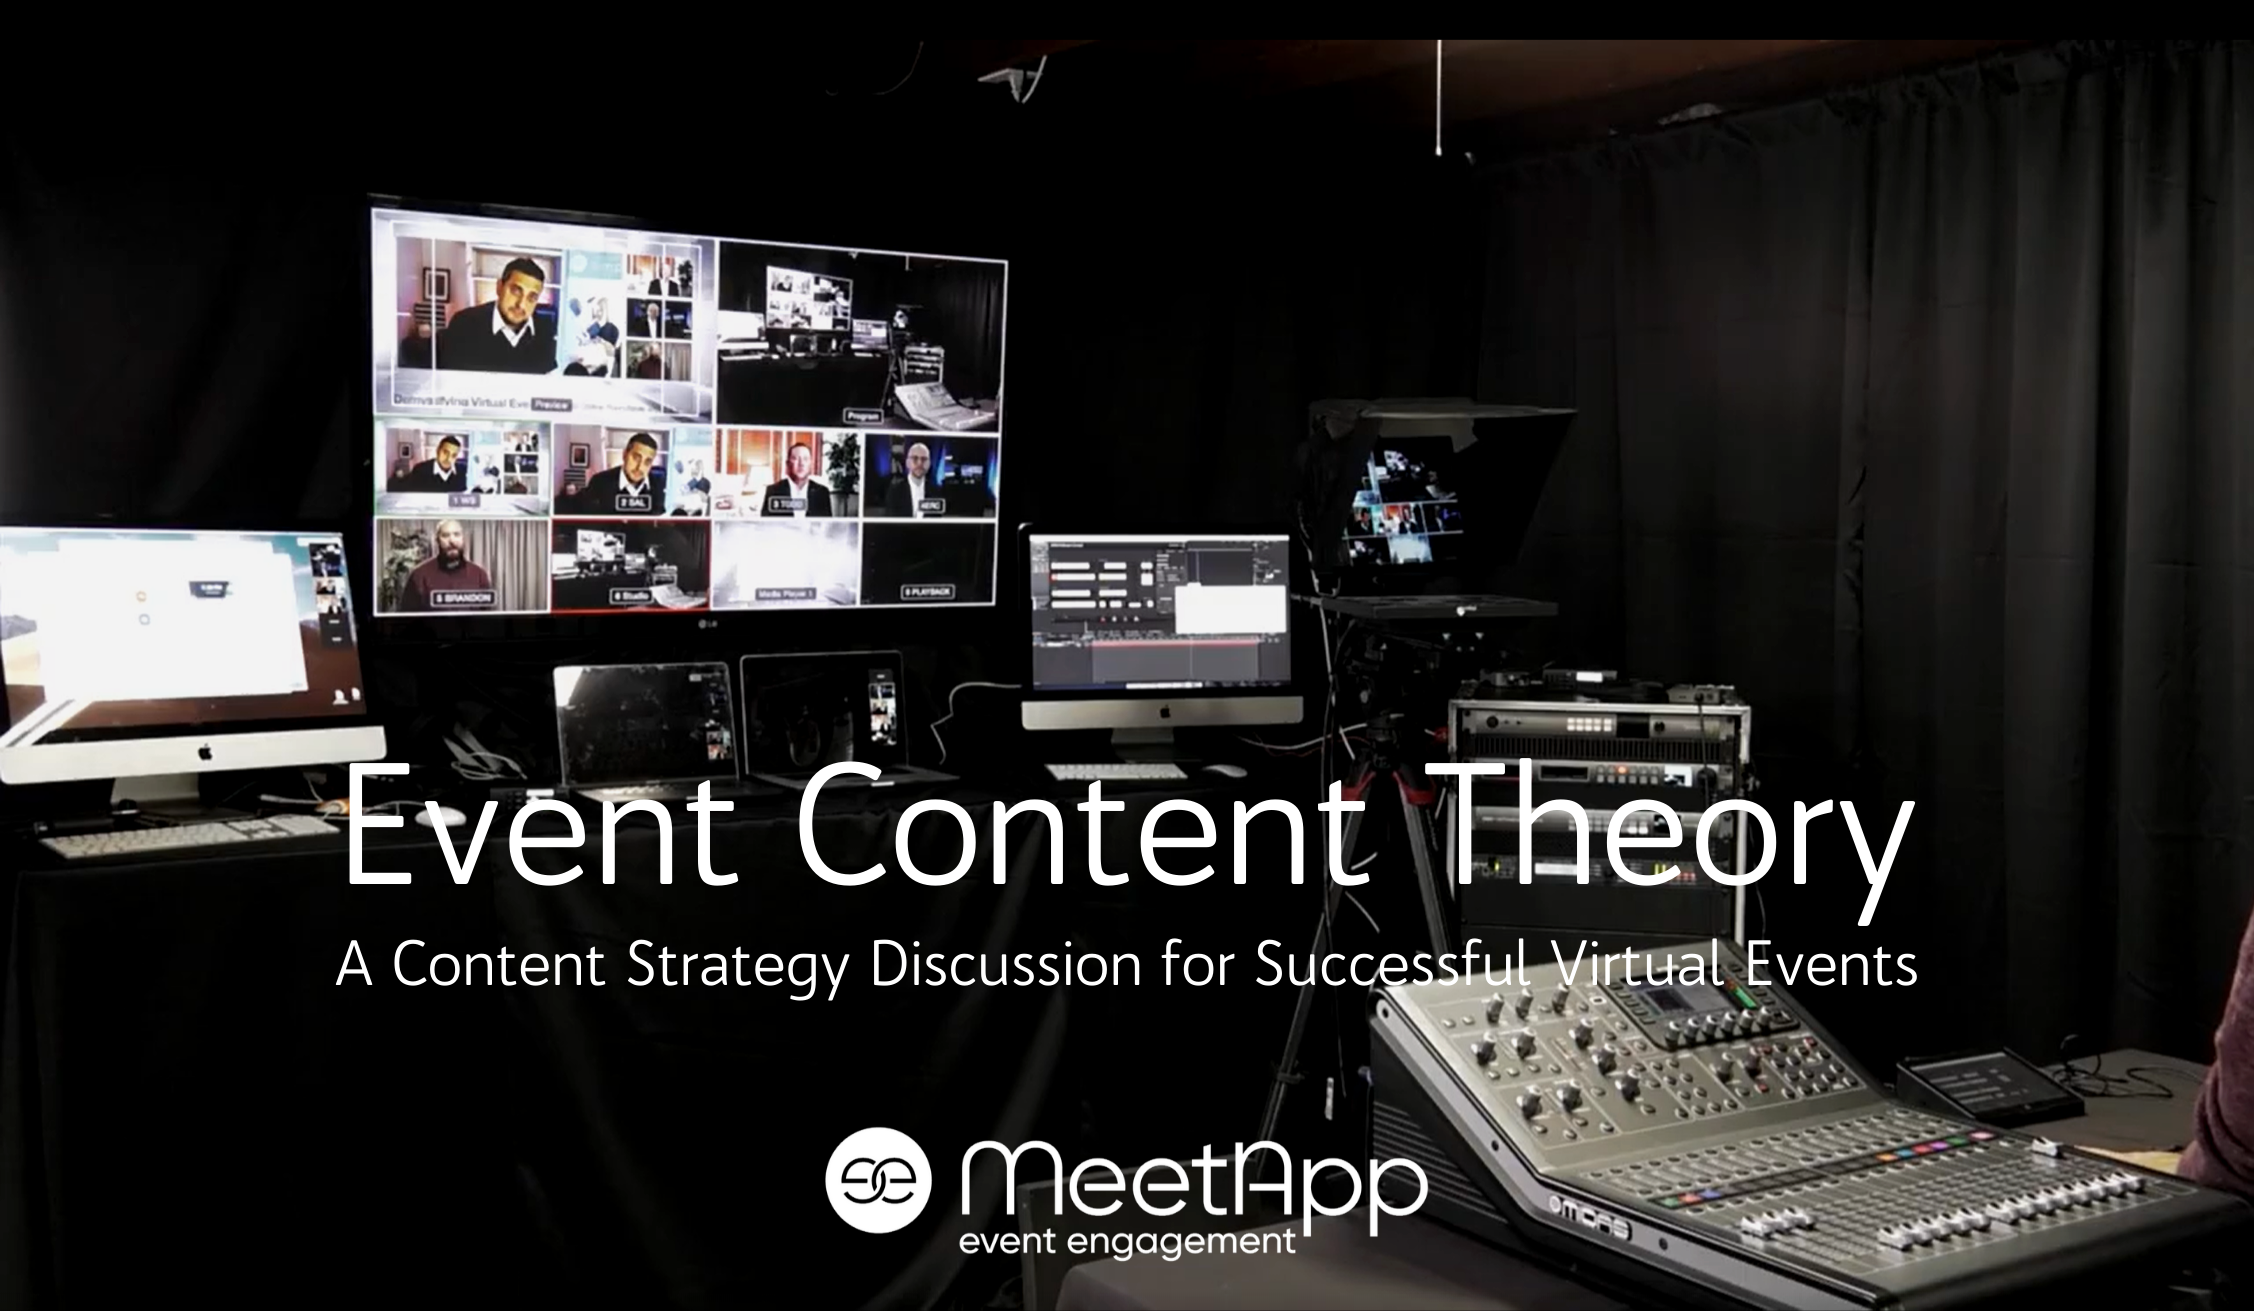 Event Content Theory